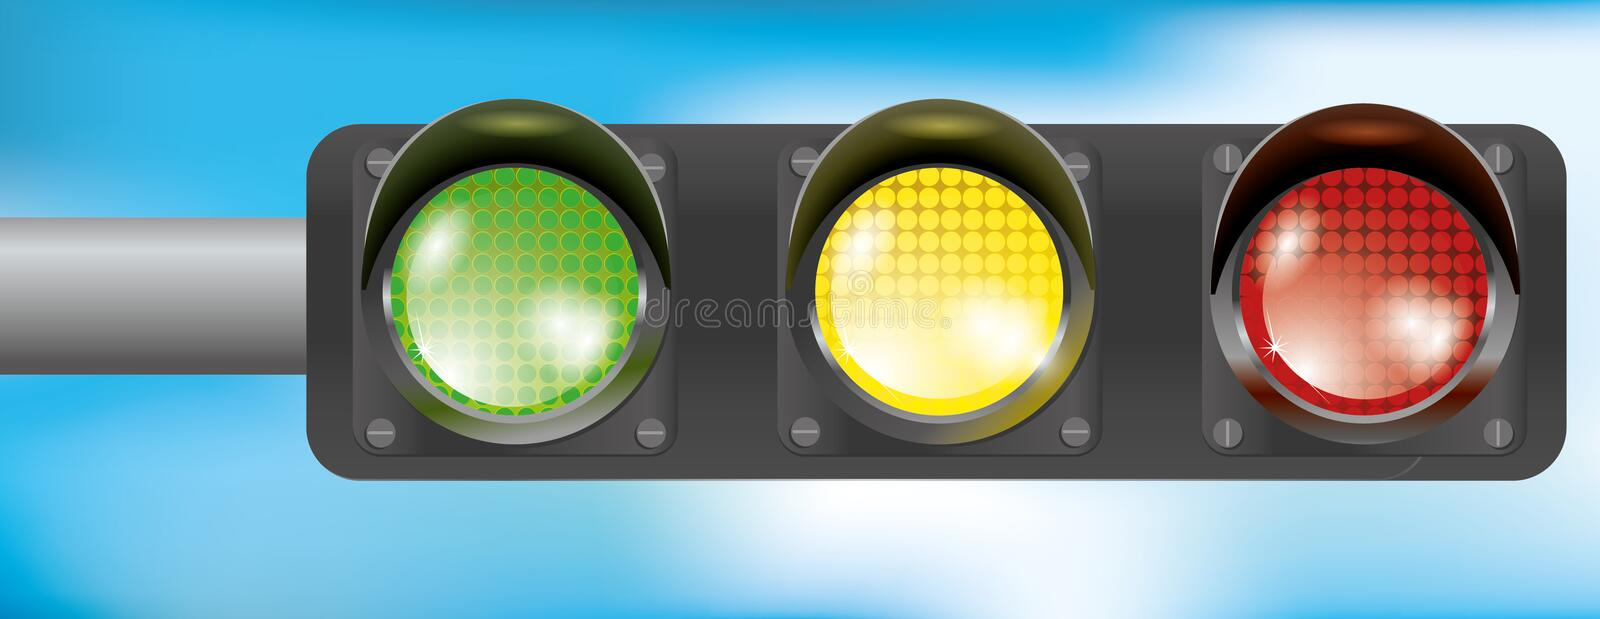 Traffic Light Isolated stock images